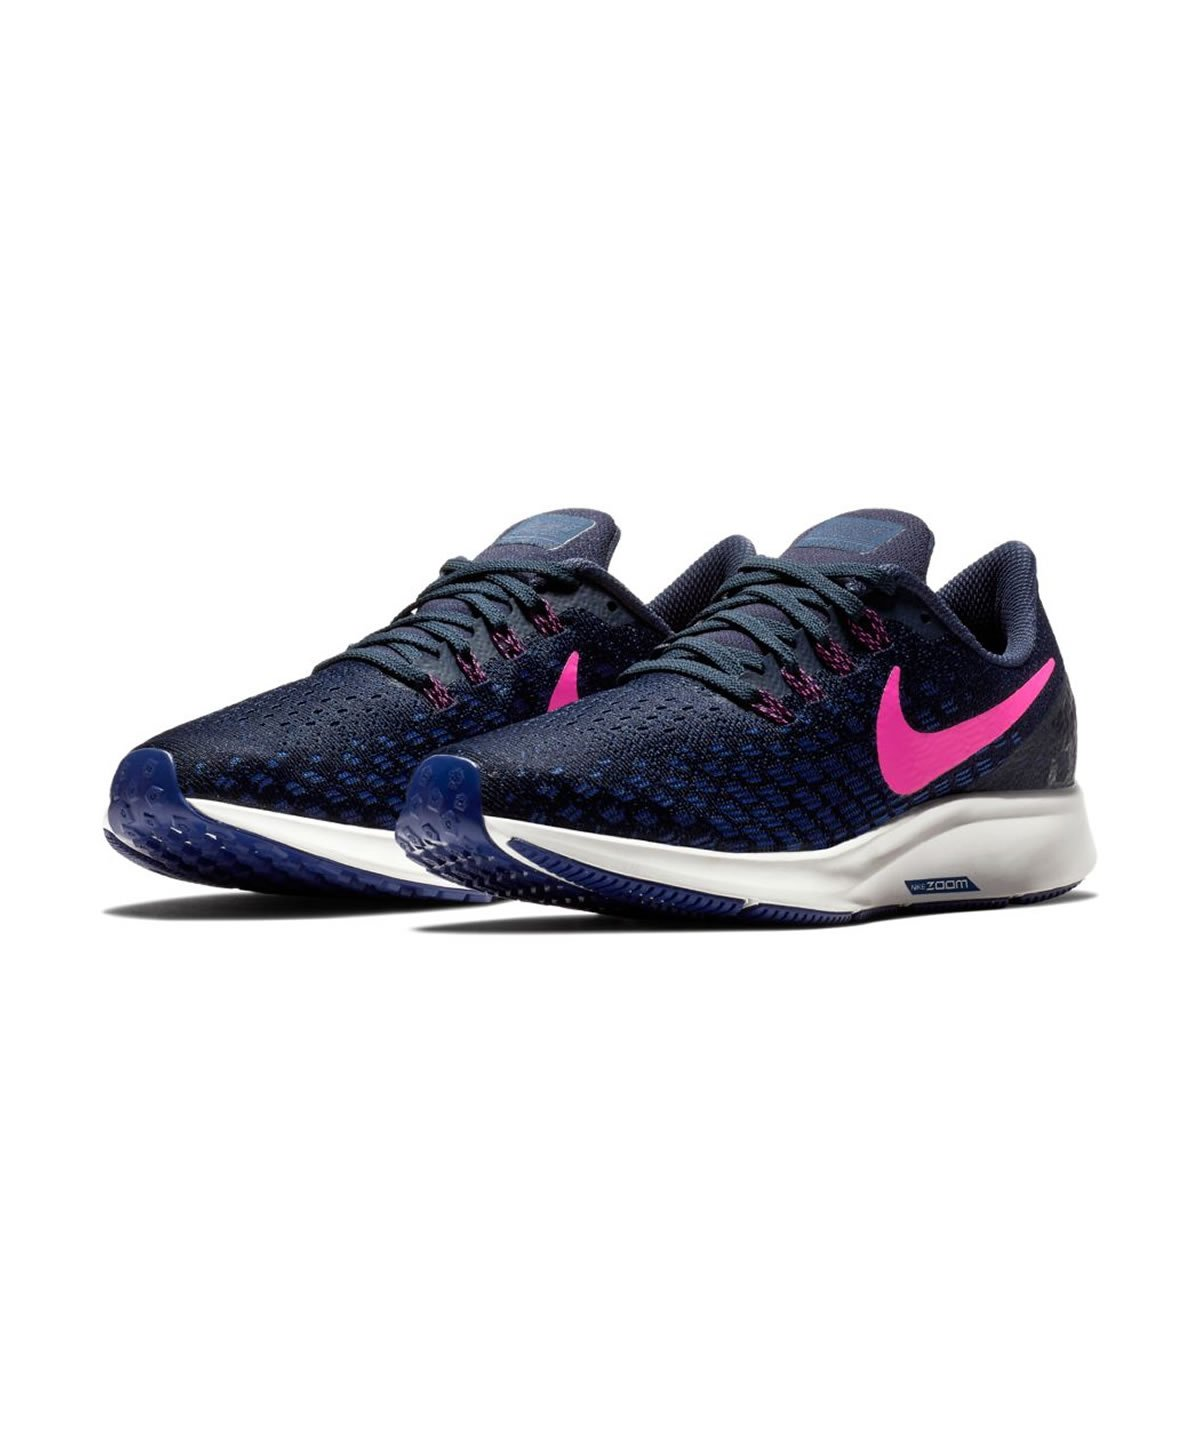 Nike Womens Air Zoom Pegasus 35 Running Shoes B078JD36K4 5.5 B(M) US|Obsidian/Pink Blast/Deep Royal Blue